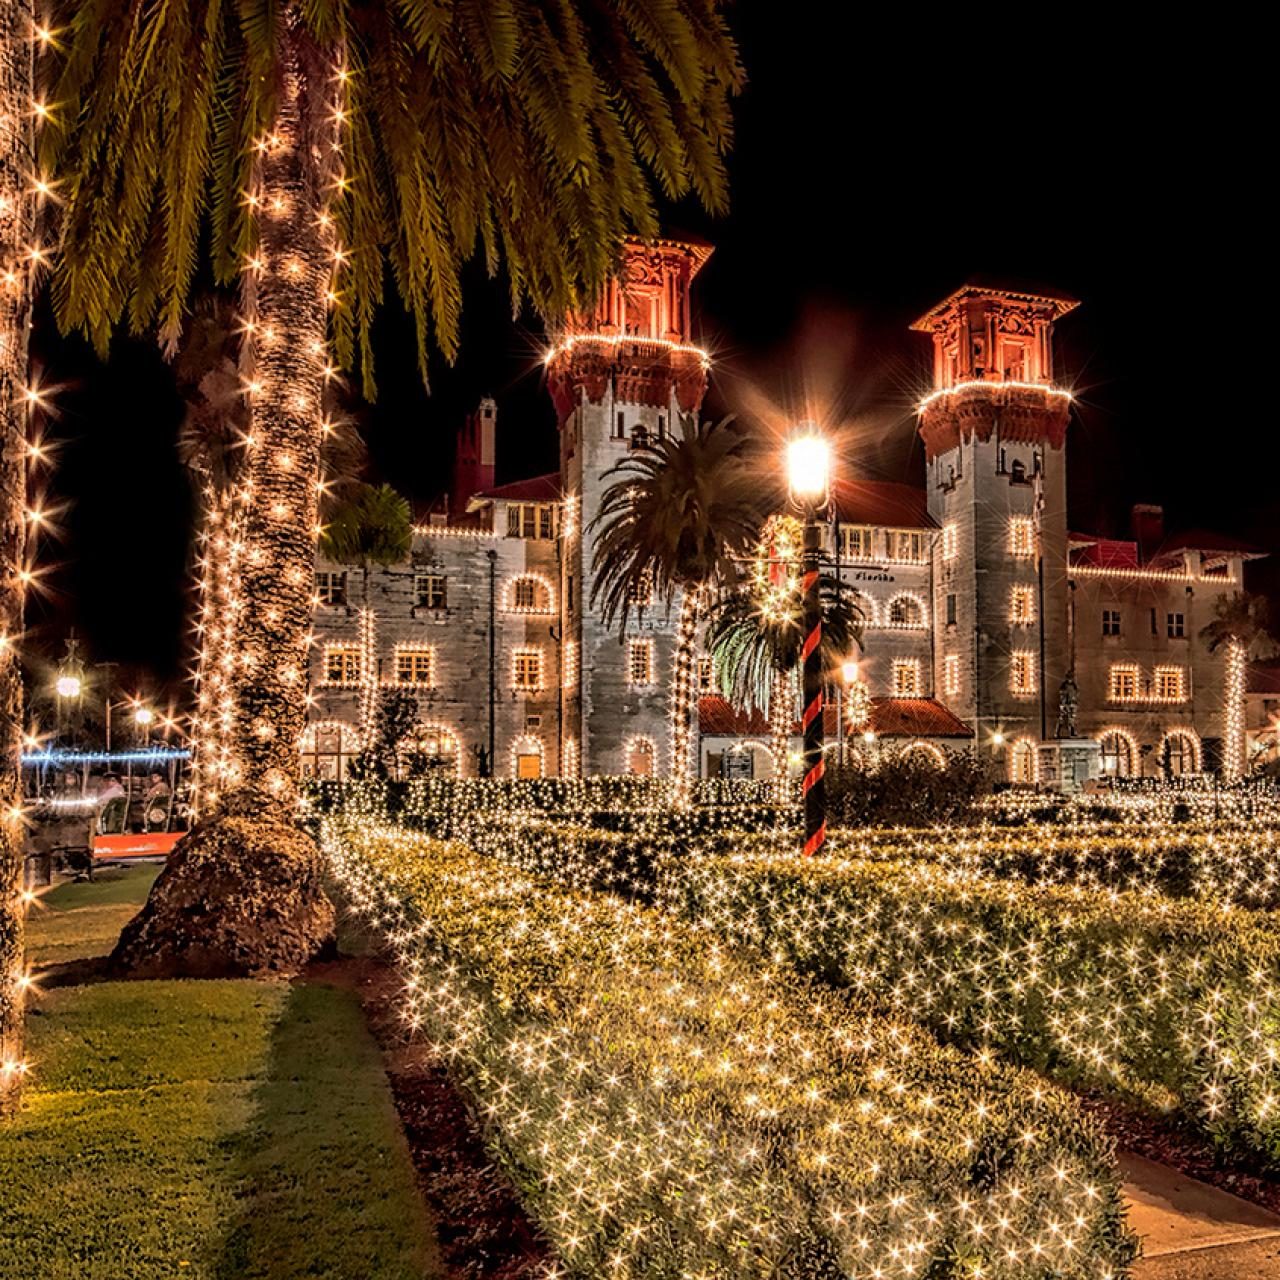 St Augustine Halloween 2020 Nights of Lights 2020 2021 | St. Augustine & Ponte Vedra, FL